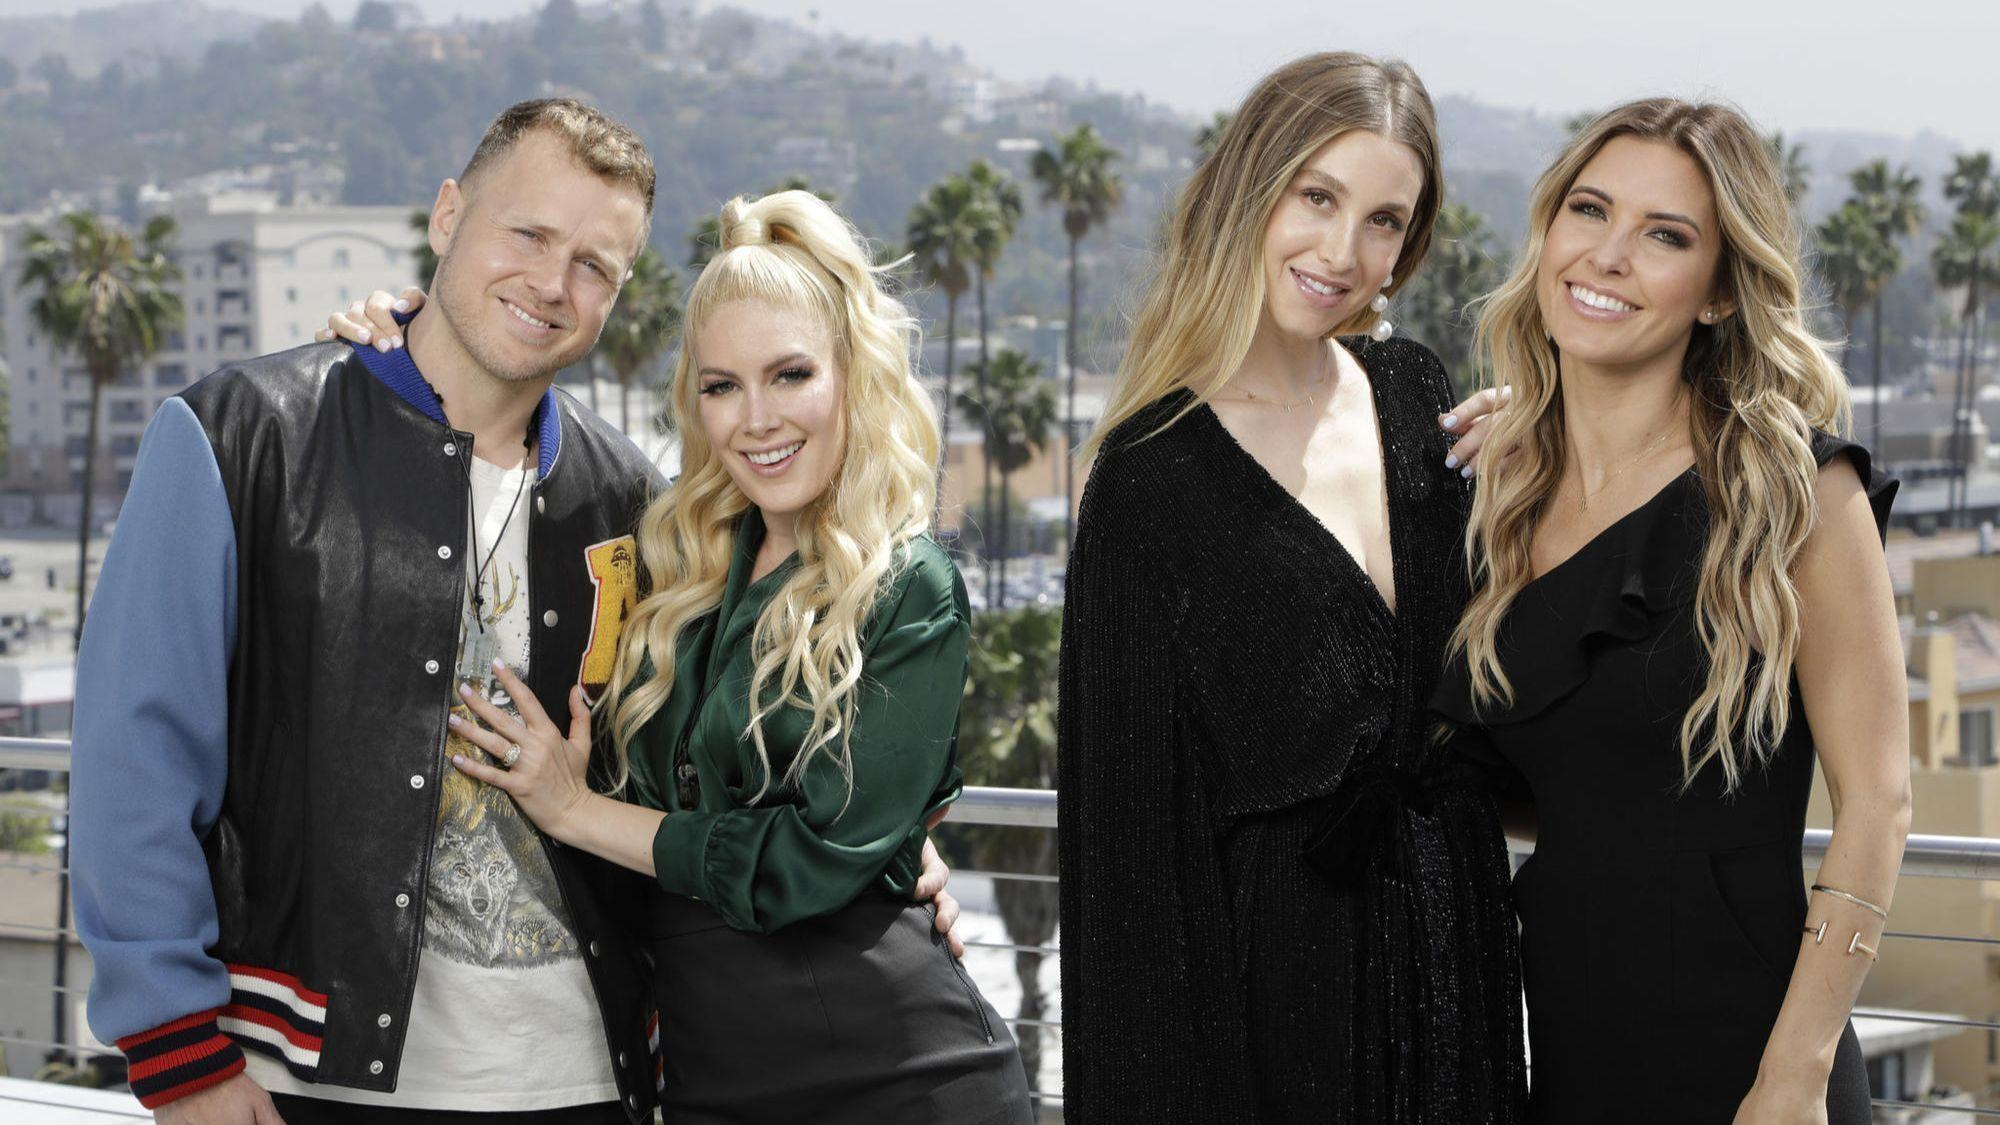 'The Hills' helped invent the social media influencer. Now what?